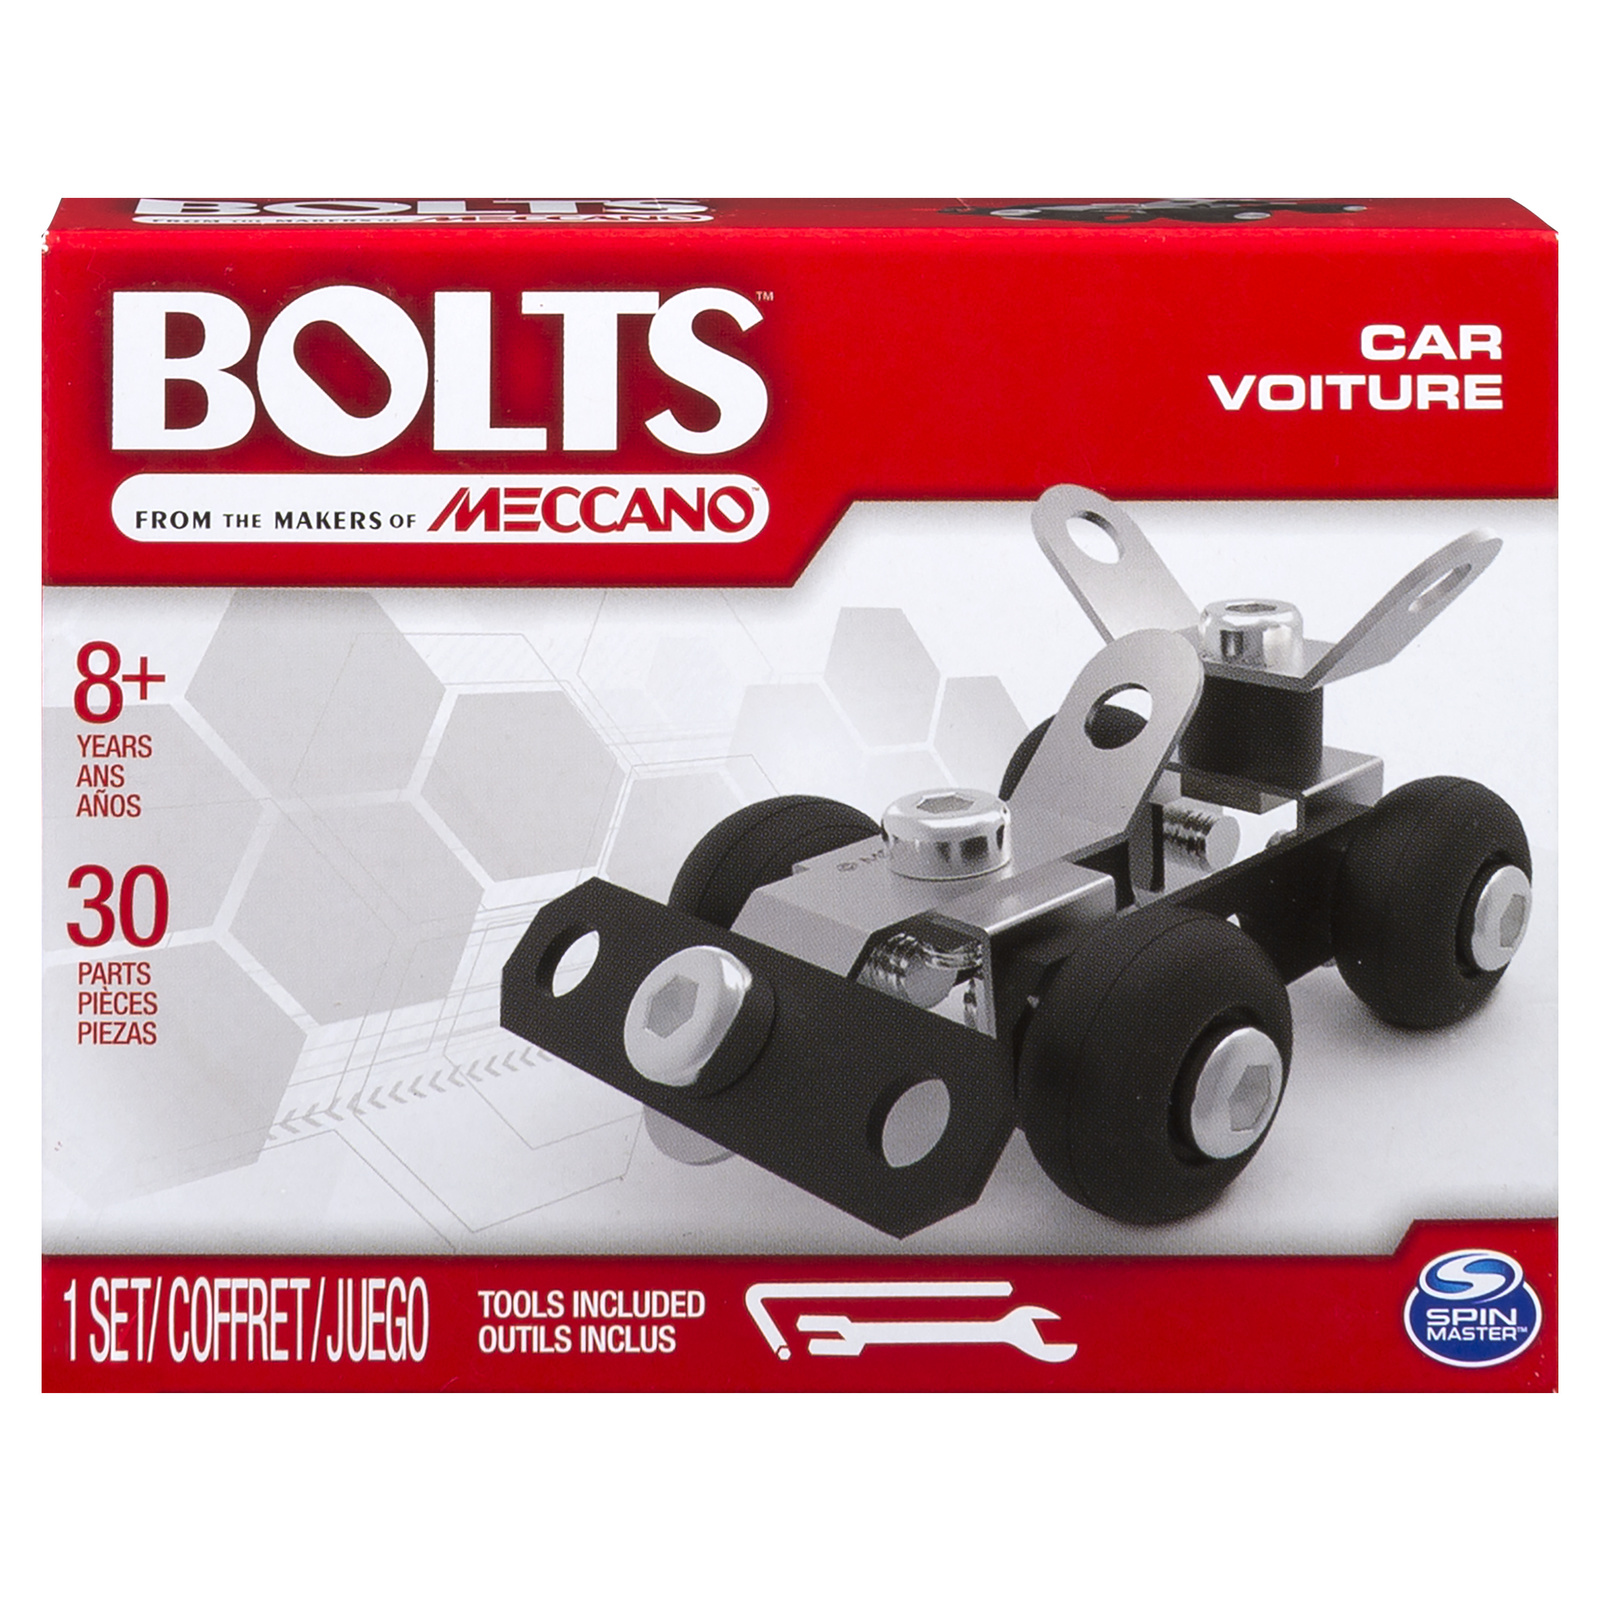 Meccano: Bolts Mini Vehicles - Car image